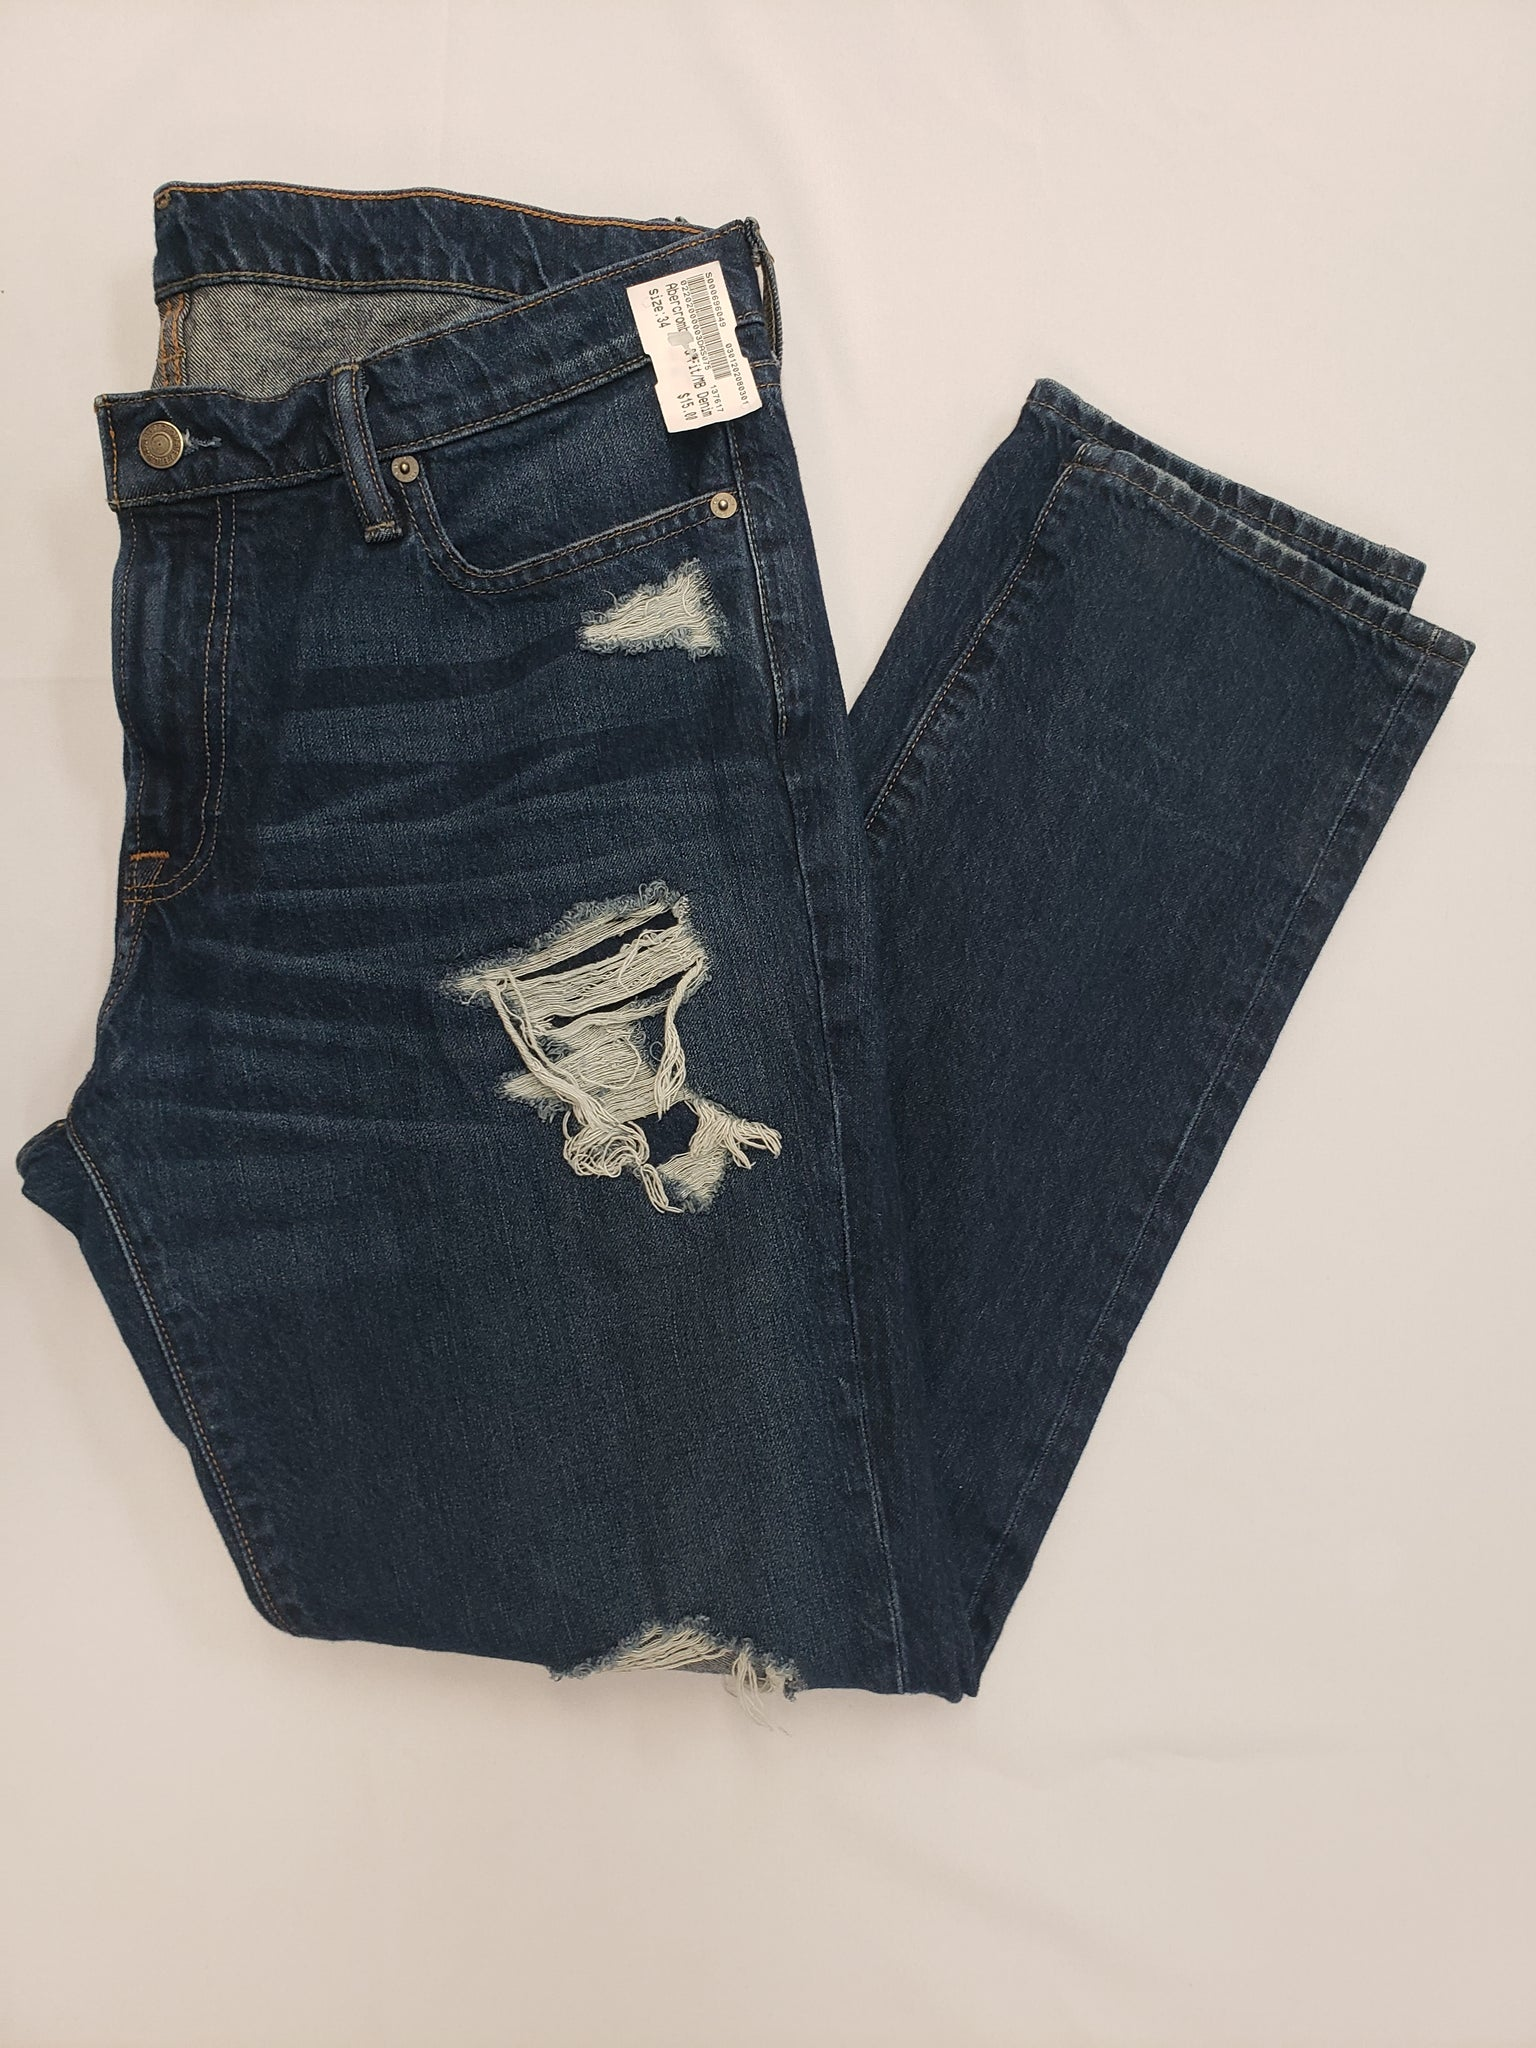 Abercrombie & Fitch Mens Denim Size 34 - Plato's Closet